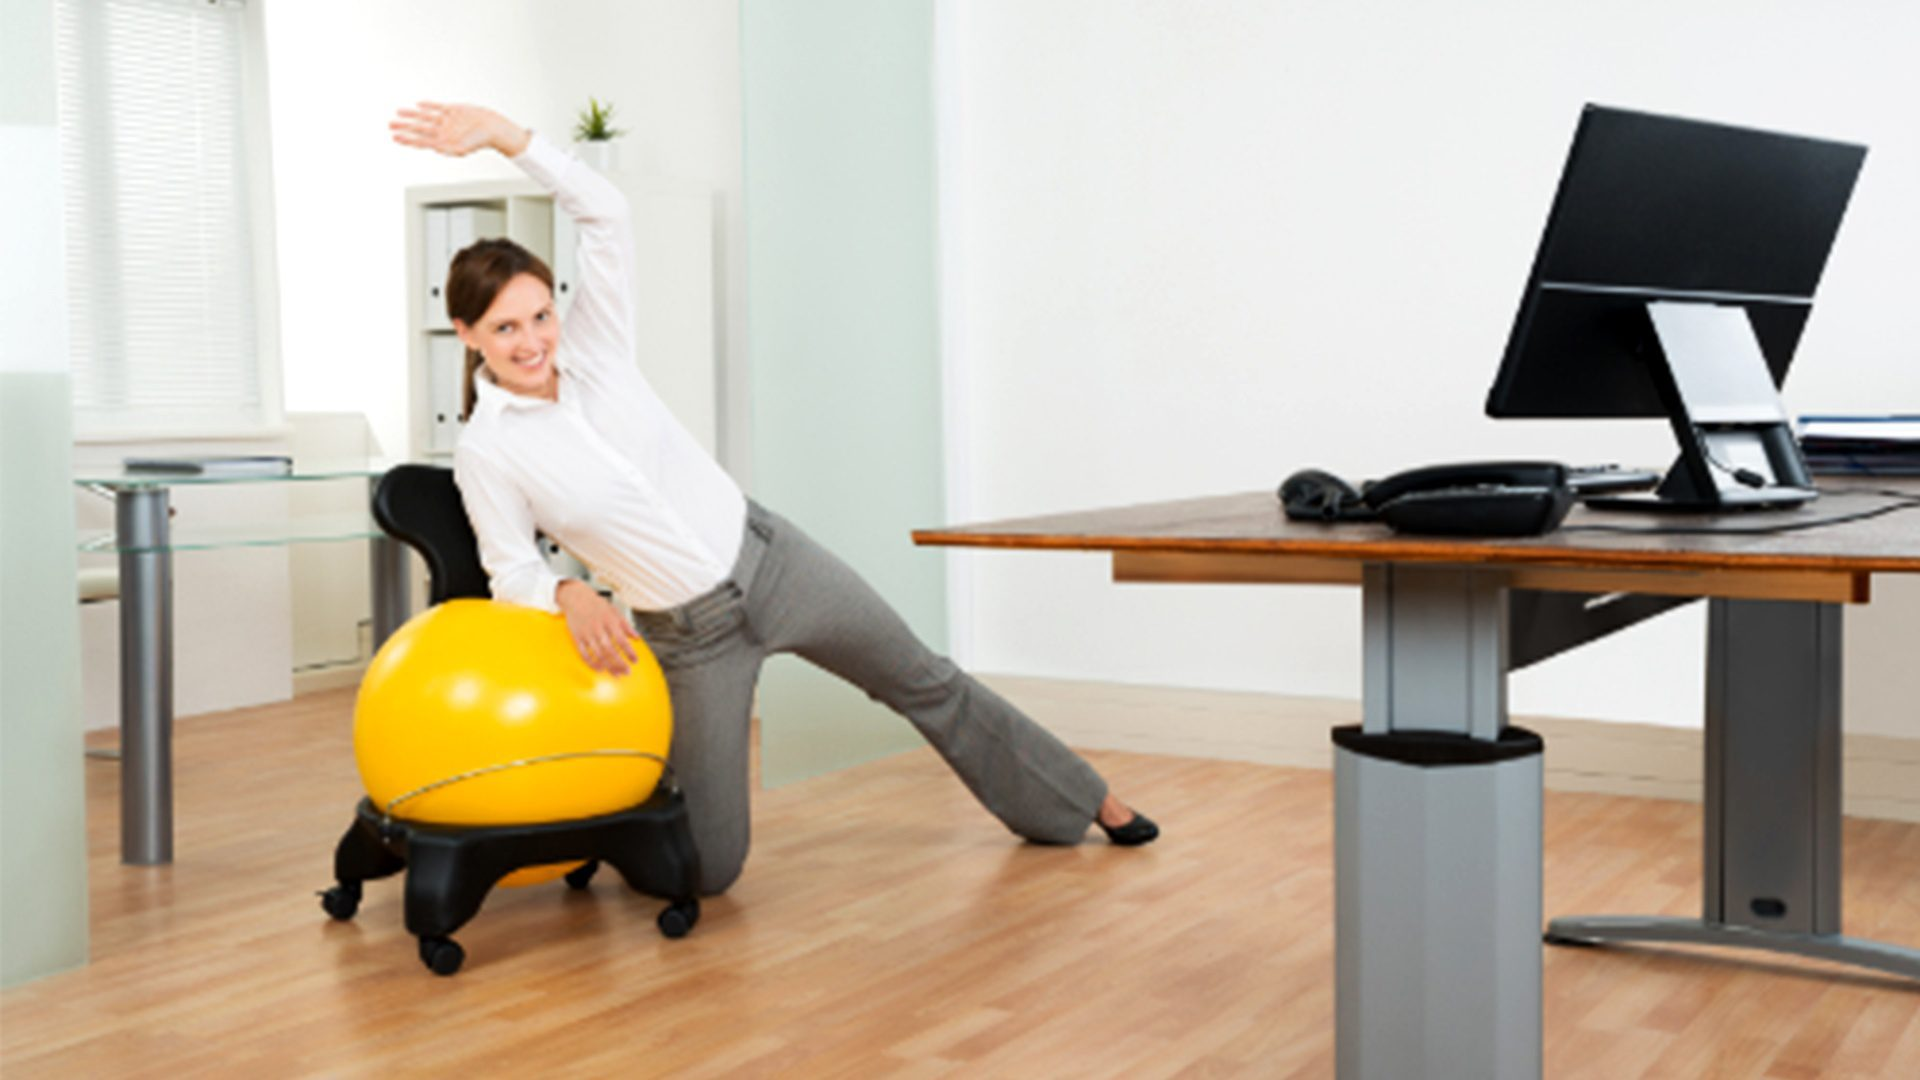 Incorporate Movement Into Your Workplace